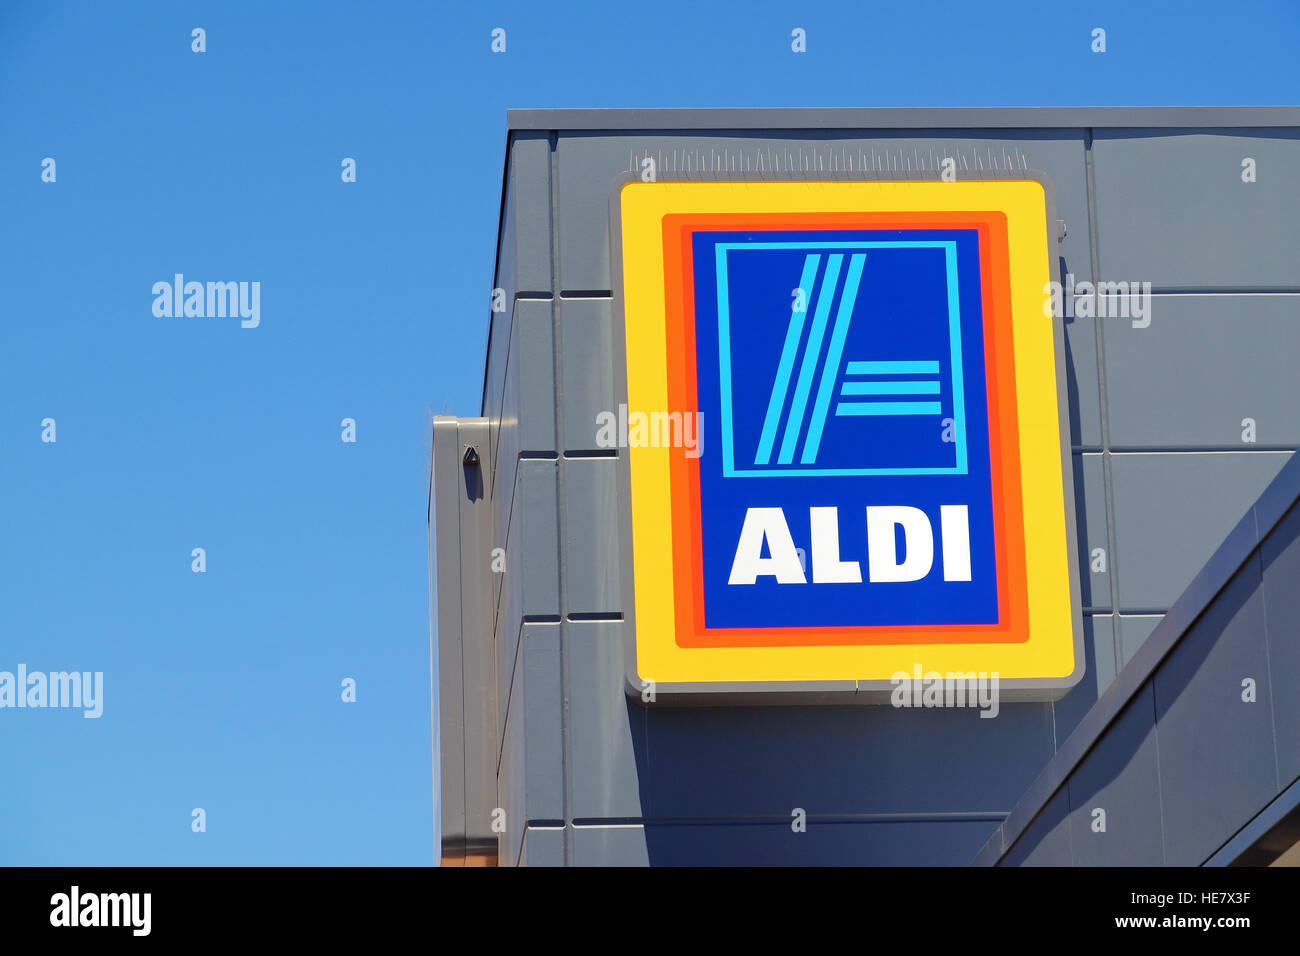 Aldi Reclame Aldi Supermarket Store Sign Stock Photos And Aldi